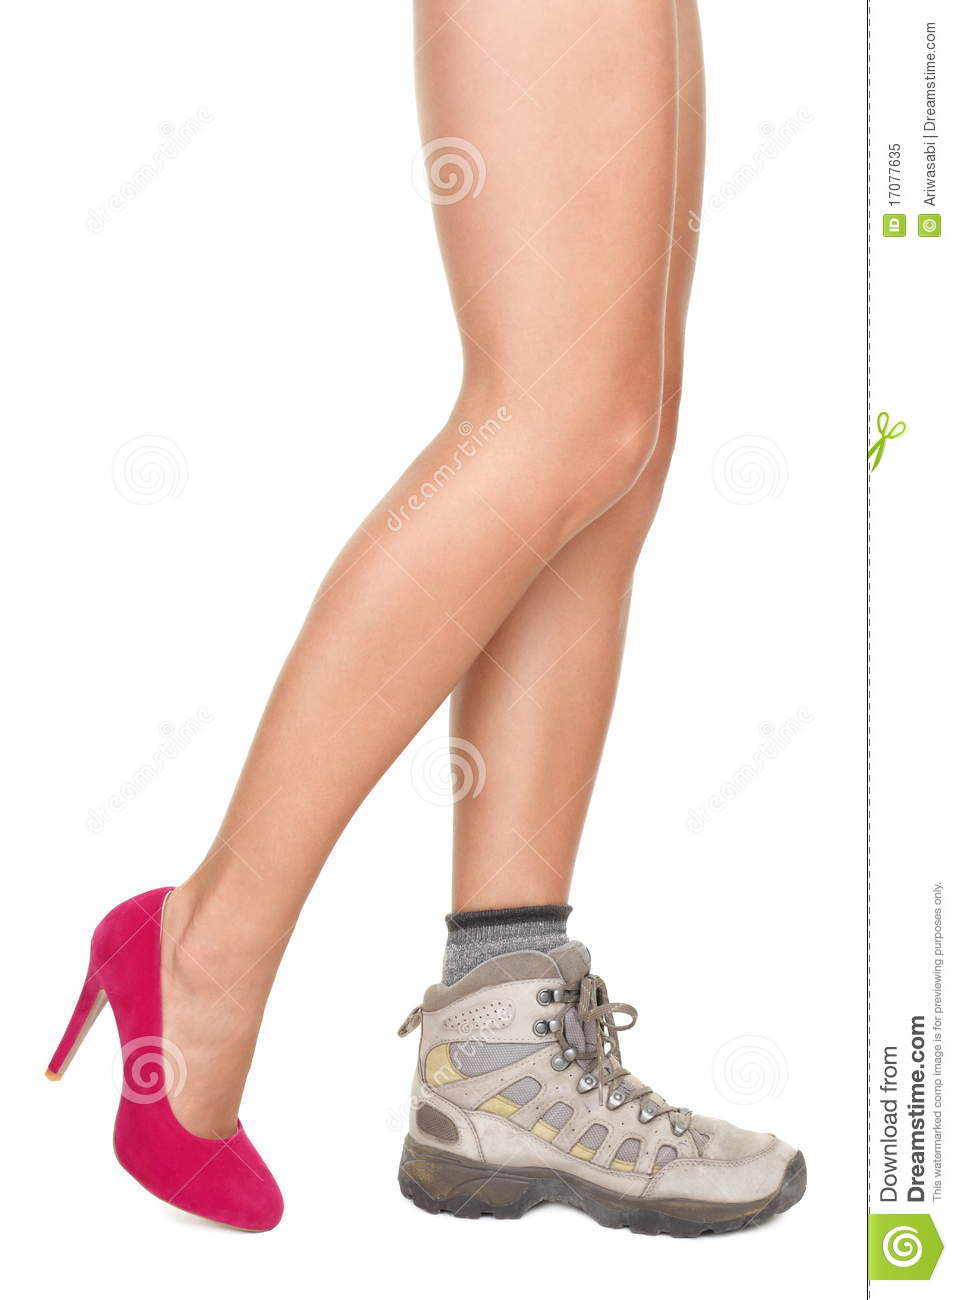 shoes decision concept high heels or sports shoe royalty